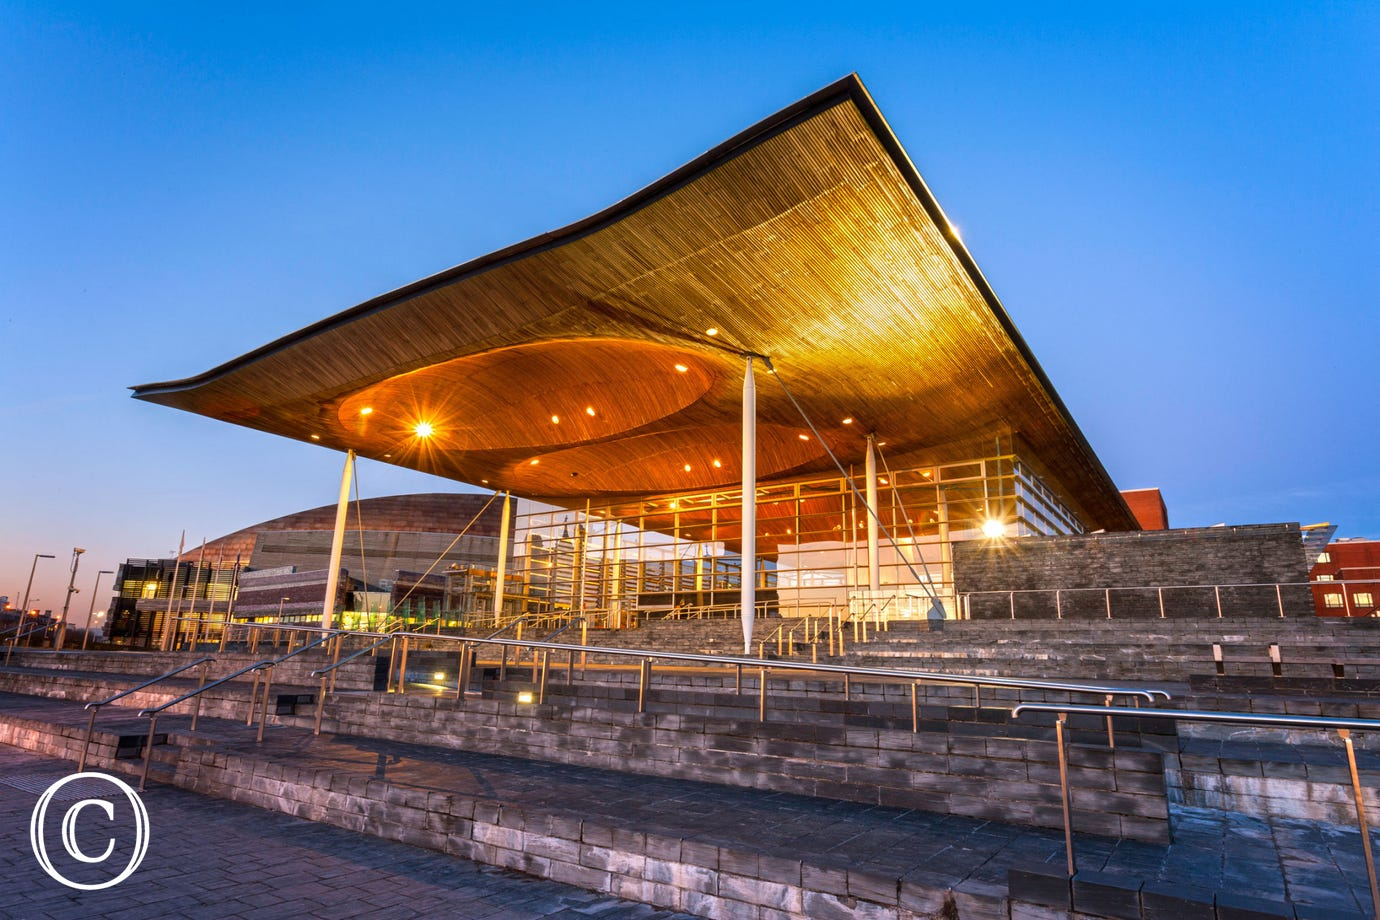 Y Senedd / Assembly in Cardiff Bay